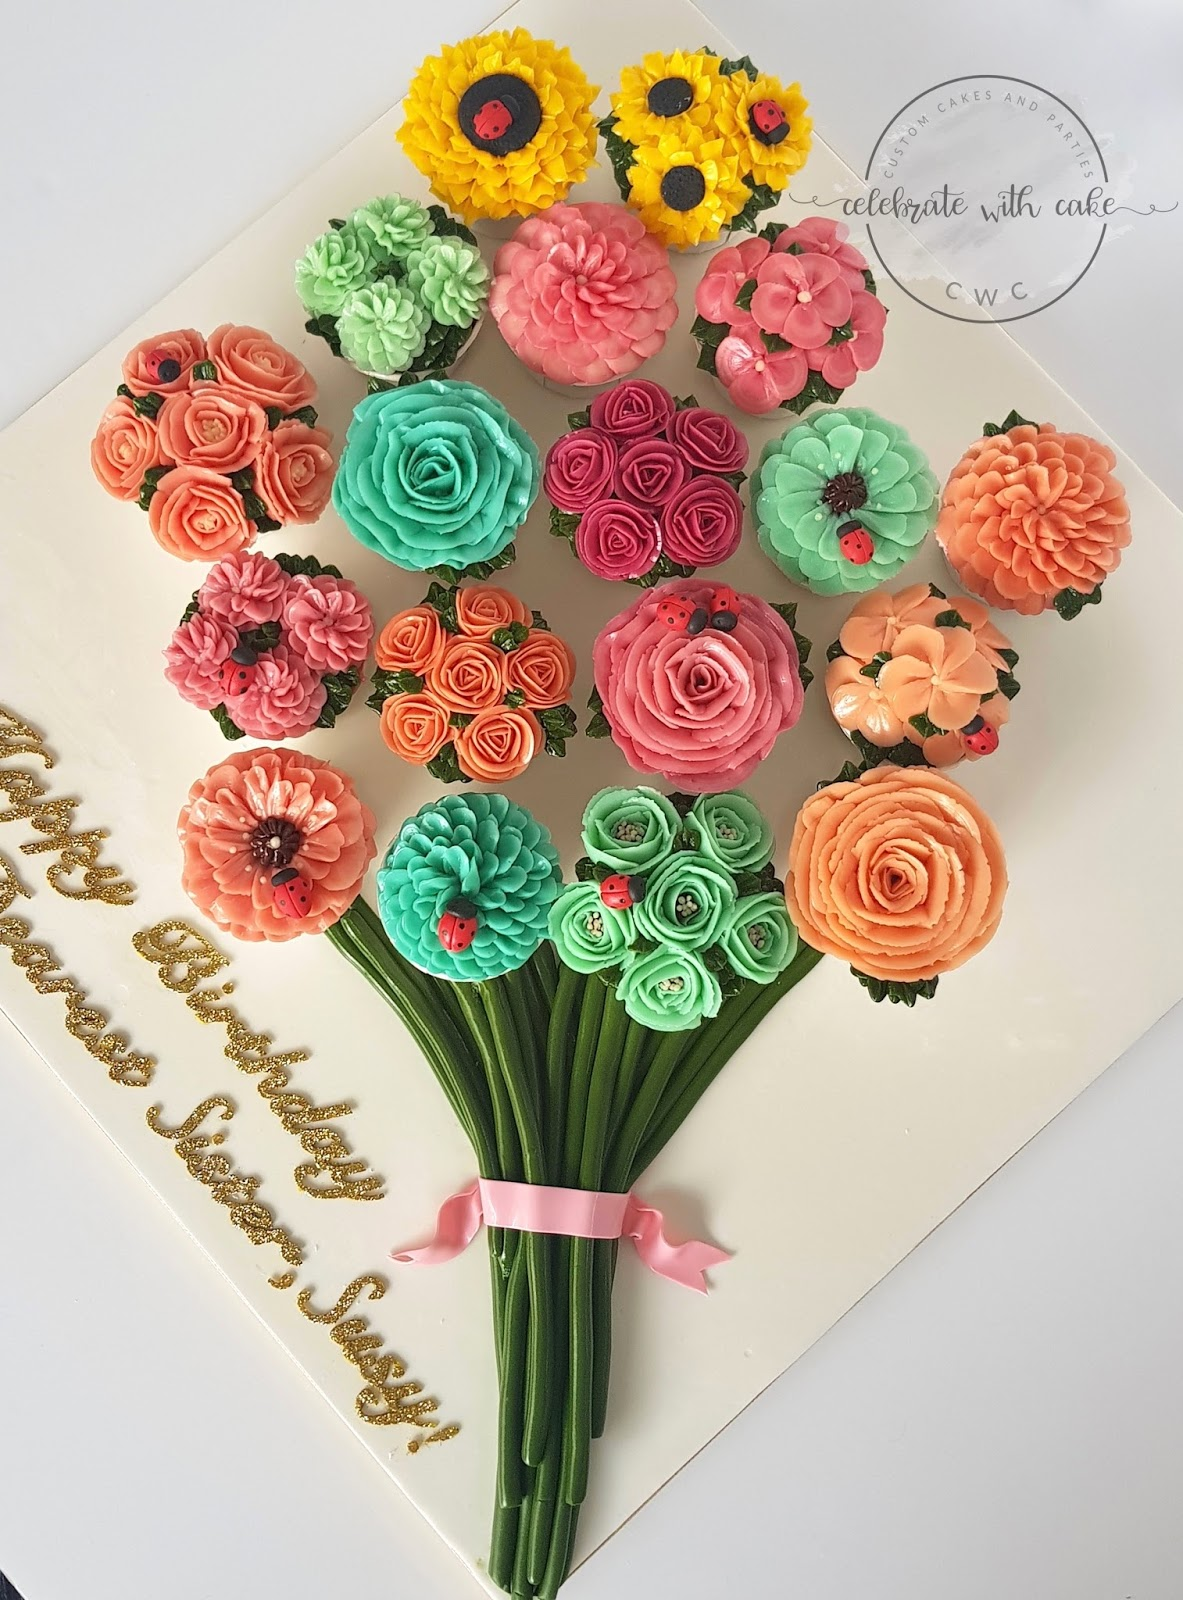 Celebrate with cake bouquet of buttercream floral cupcakes bouquet of buttercream floral cupcakes izmirmasajfo